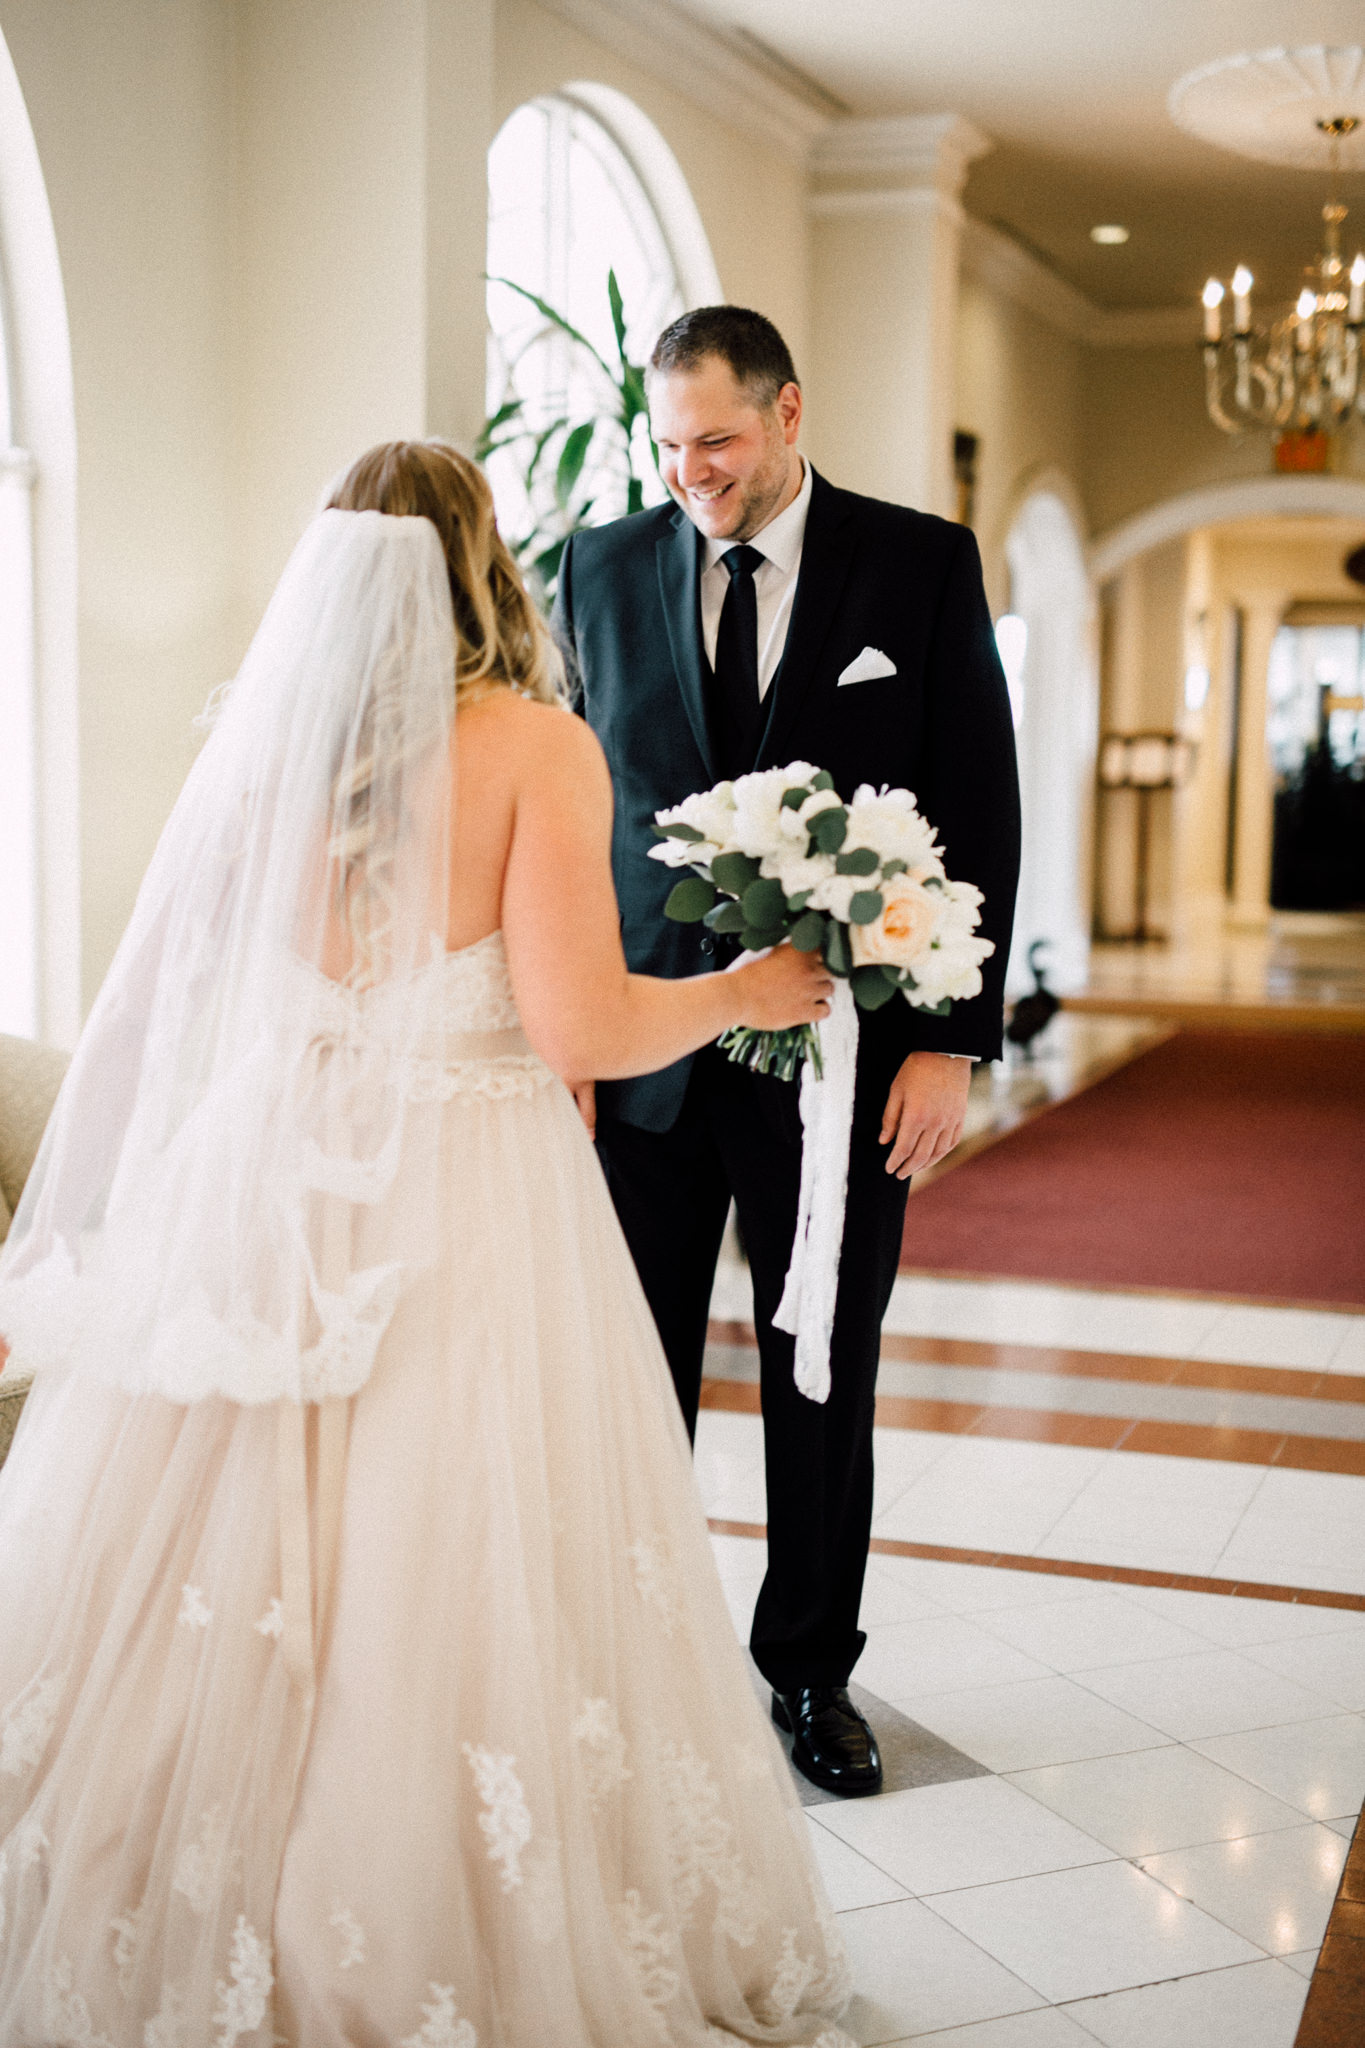 Queens-Landing-Niagara-on-the-Lake-Wedding-photography-by-Simply-Lace-010.JPG